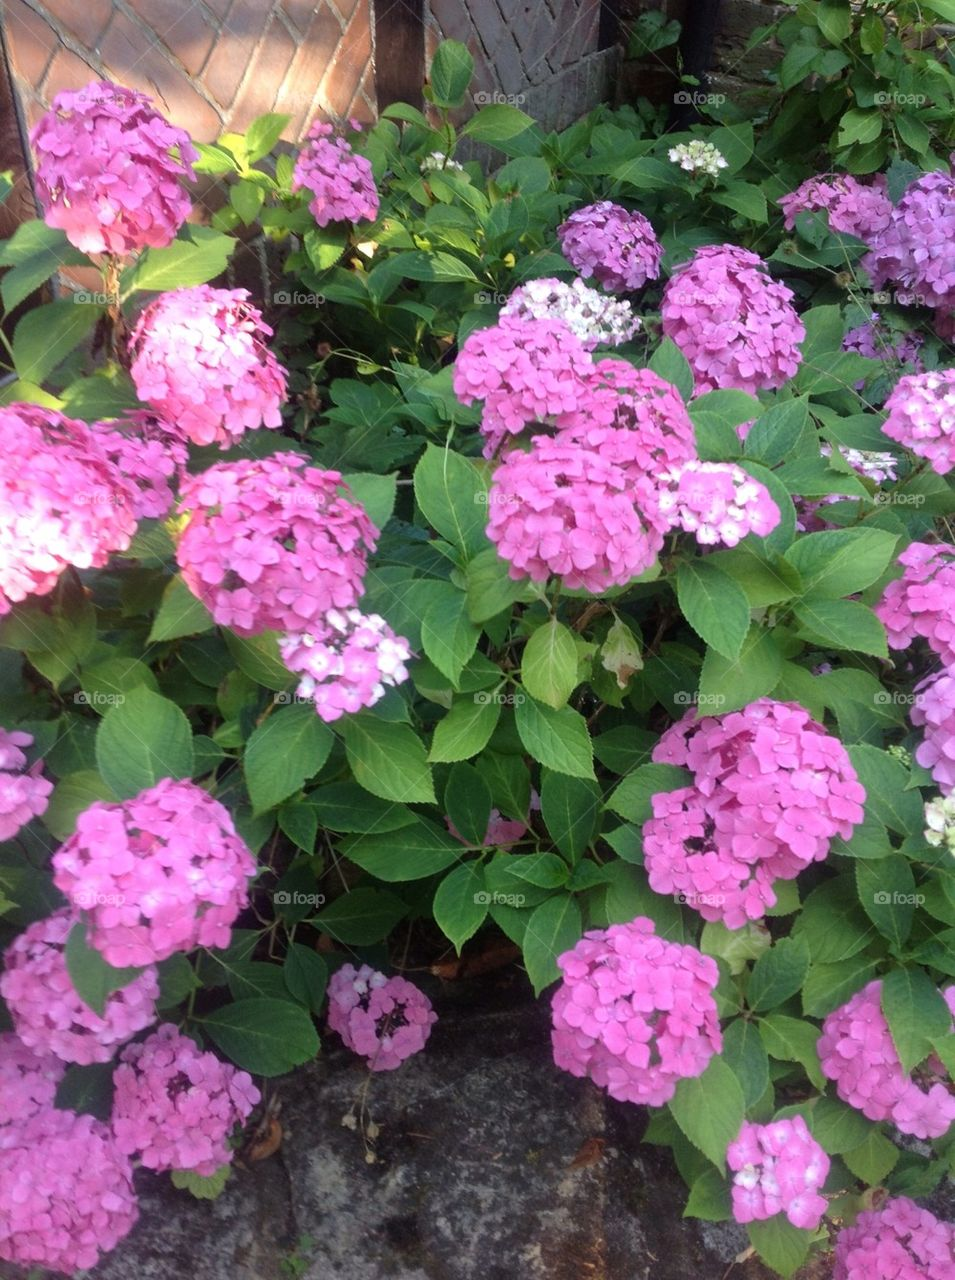 Pink Hydrangeas in summer